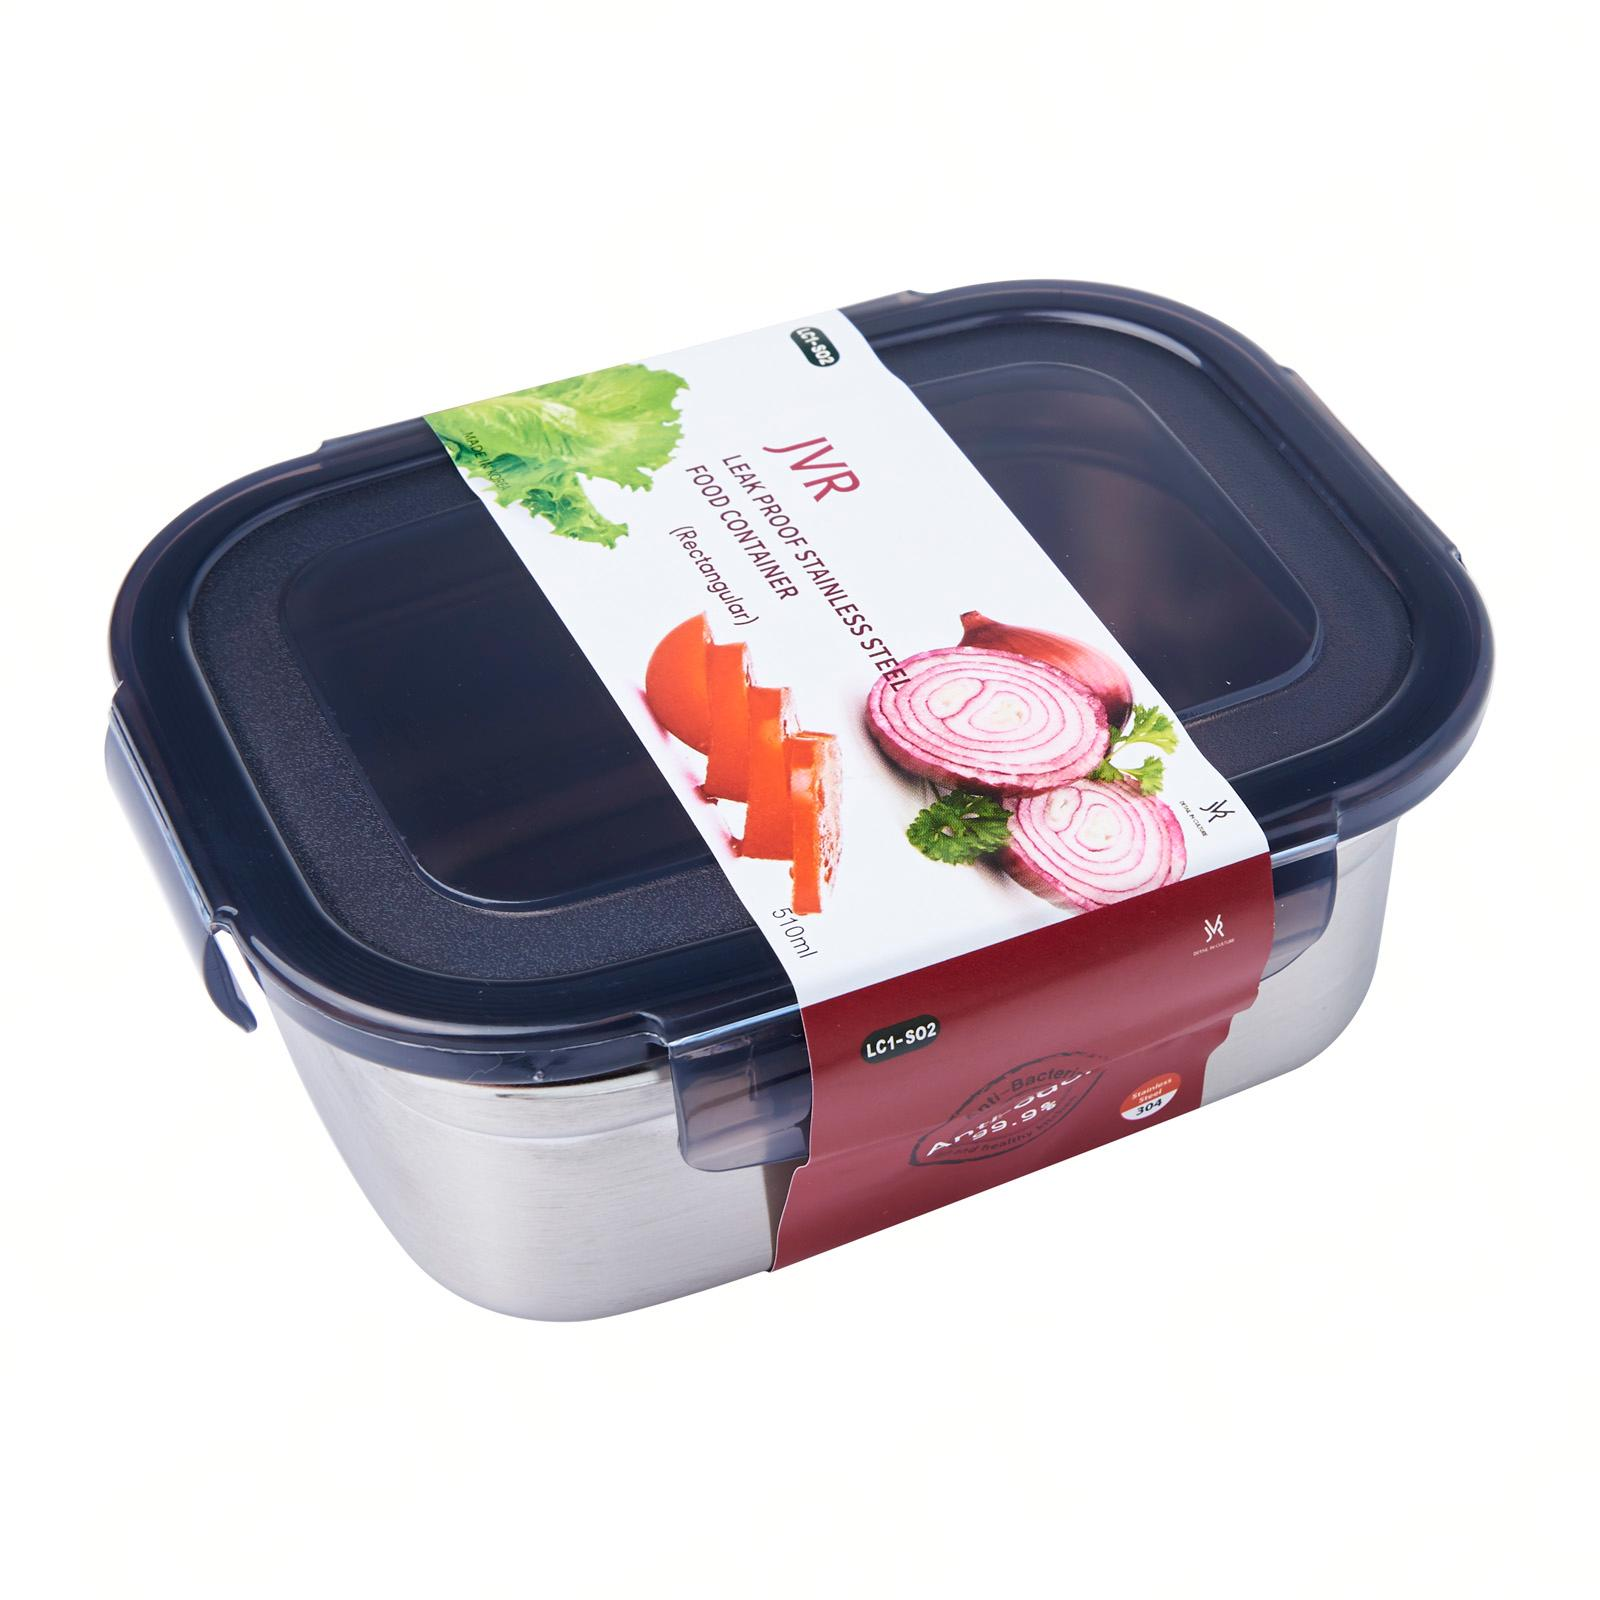 JVR Stainless Steel Food Container With Lid 510ml Rectangular